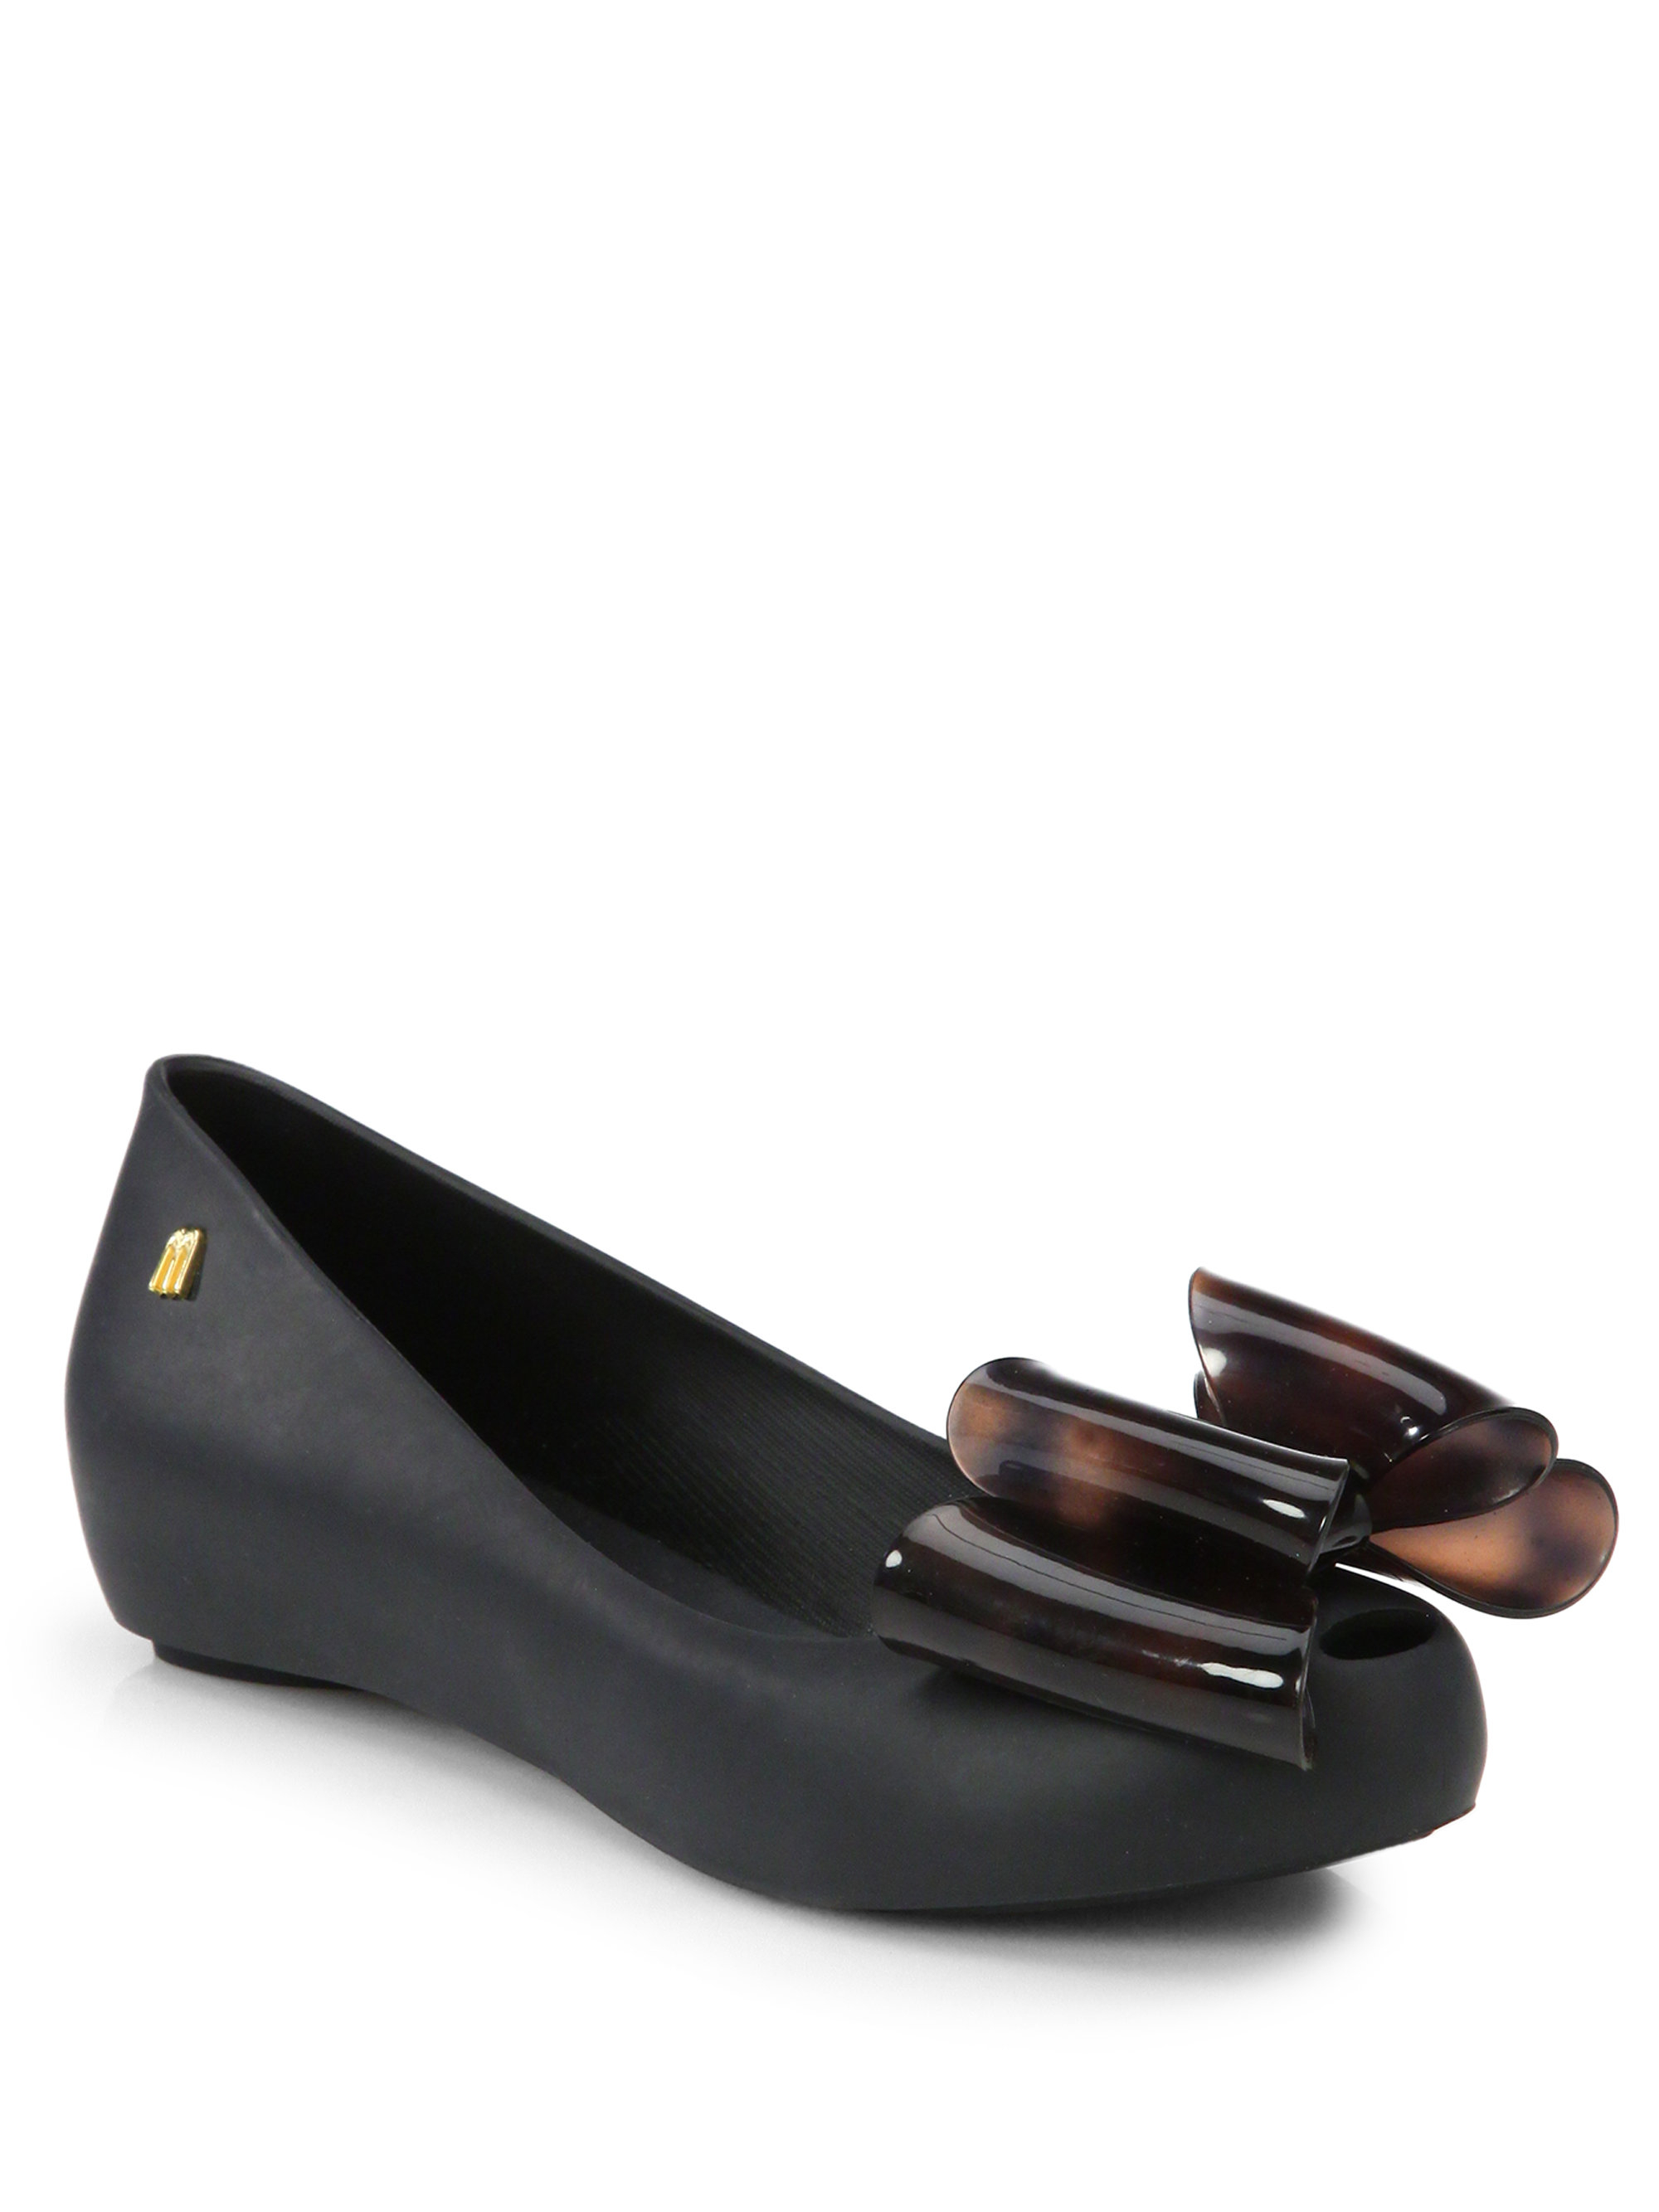 Melissa Black Bow Shoes